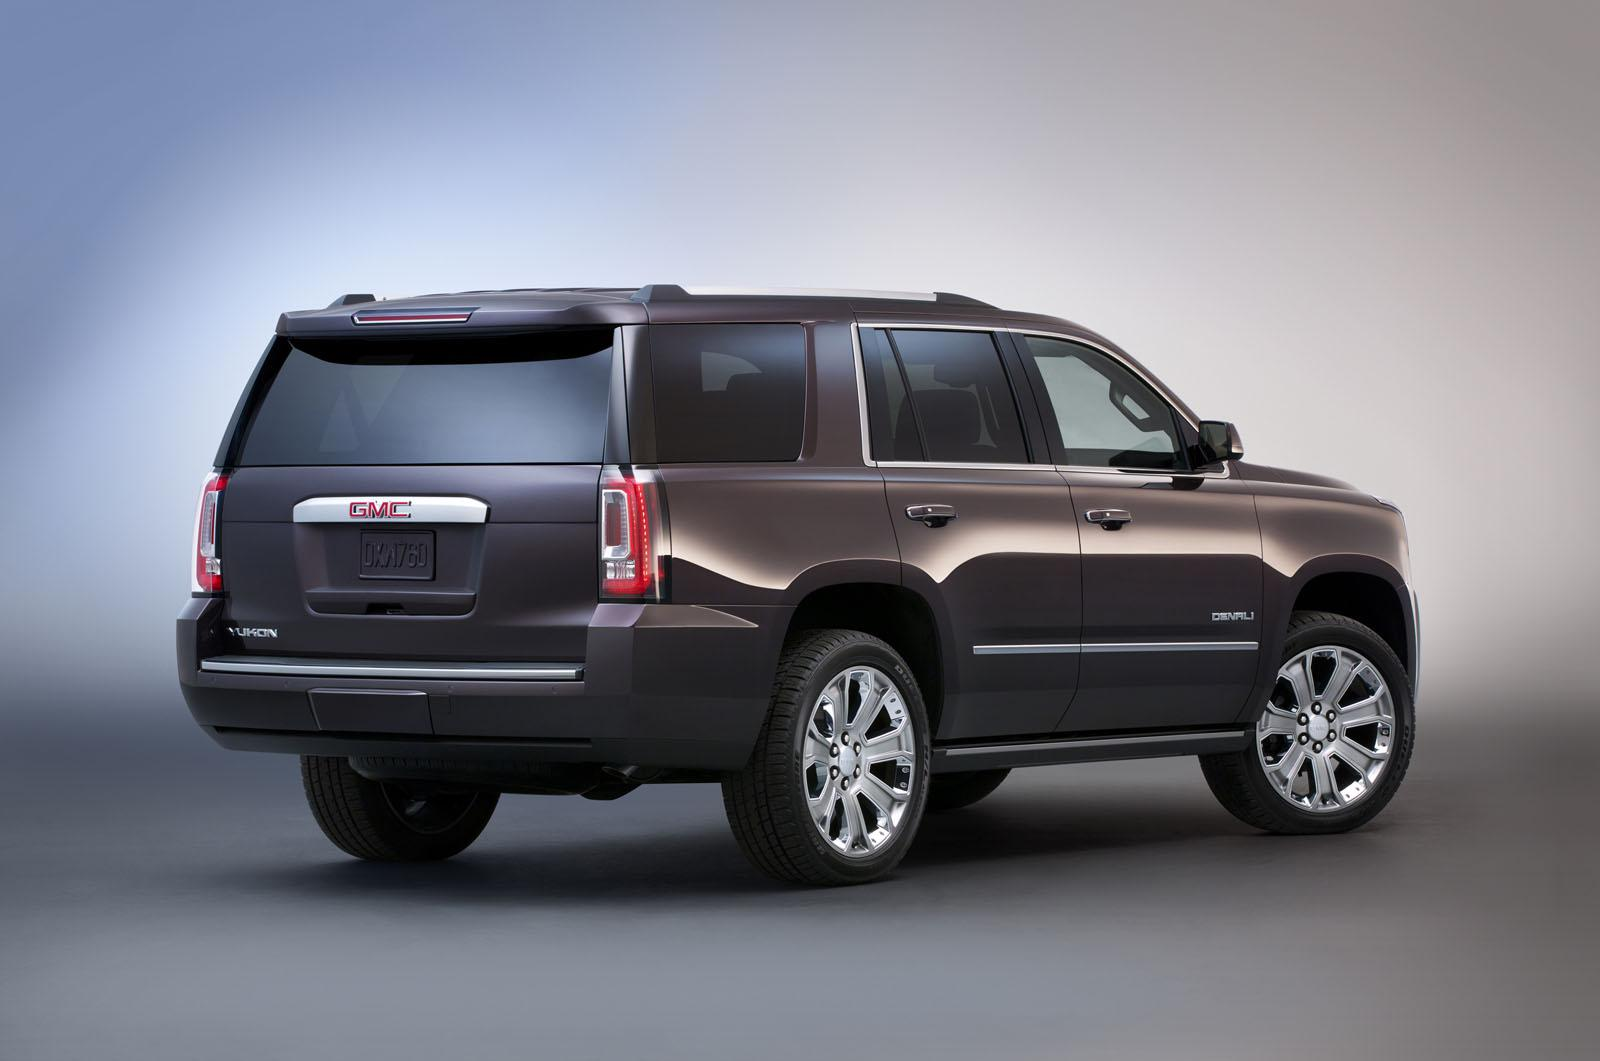 2017 Yukon Denali >> 2015 GMC Yukon Denali, Yukon XL Revealed [Video ...